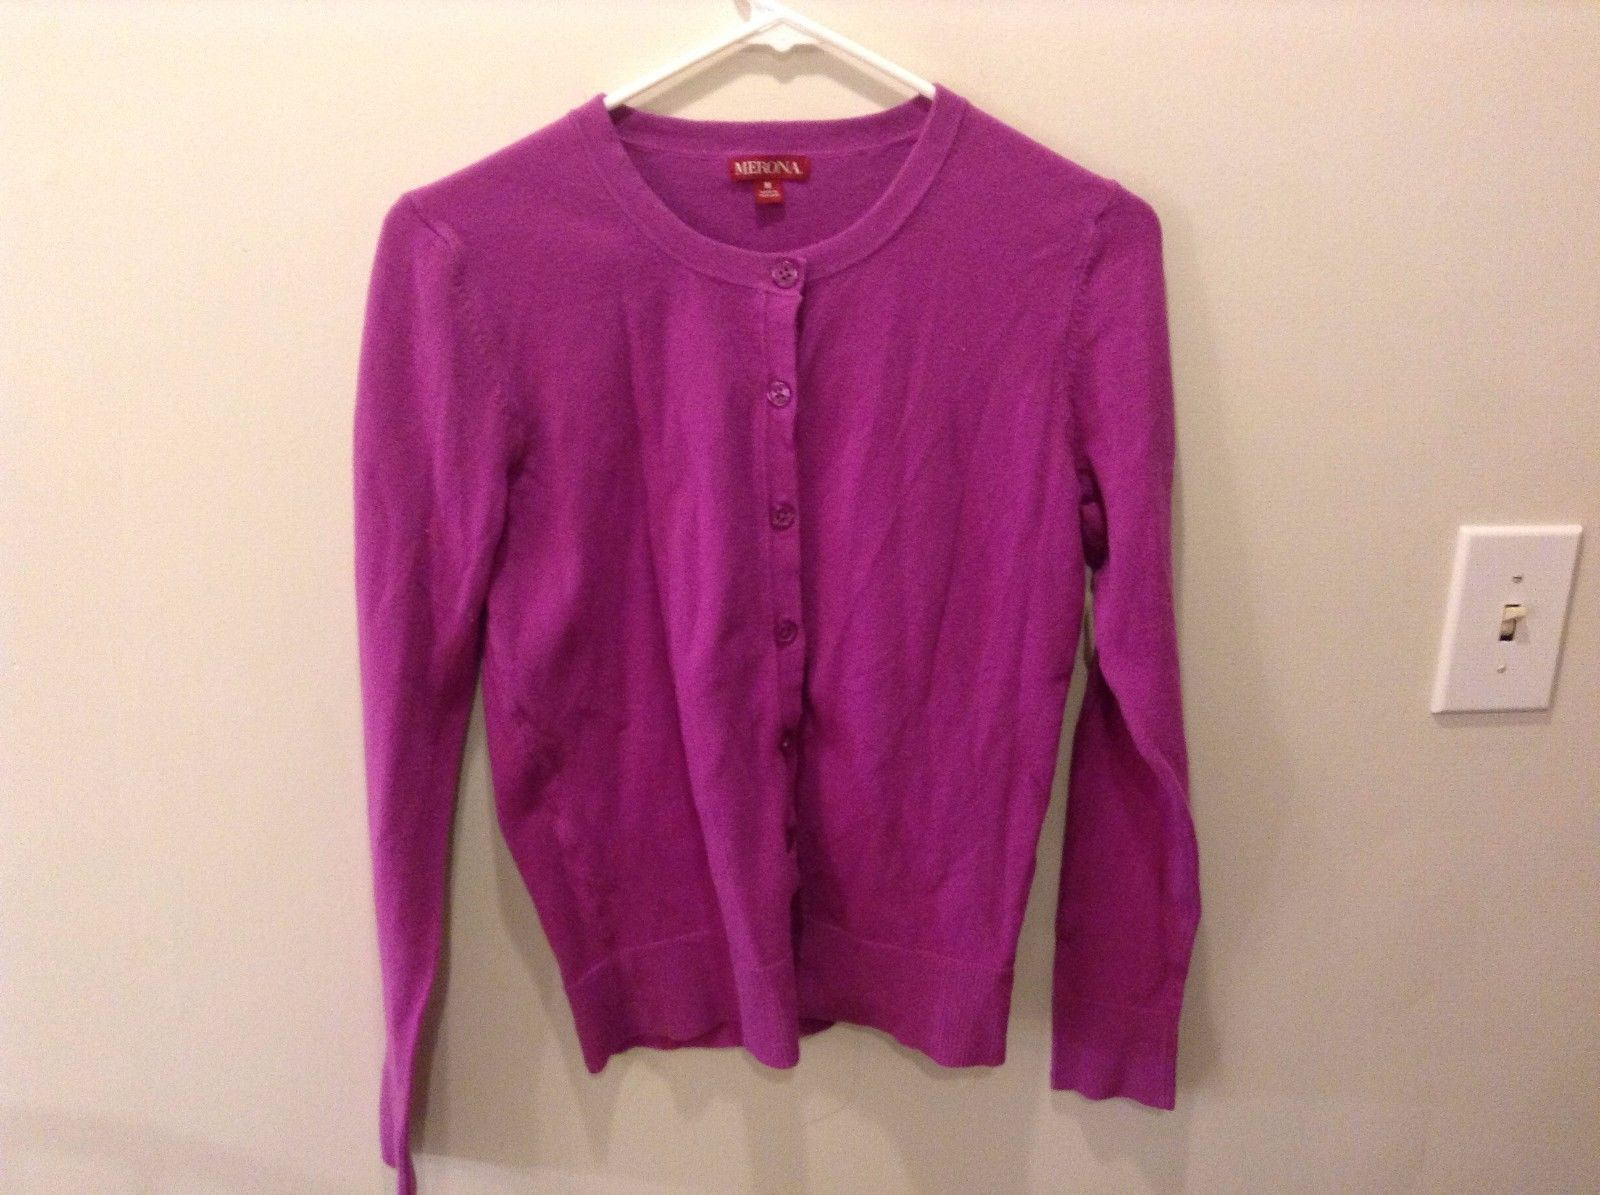 Merona Women's Light Purple Sweater